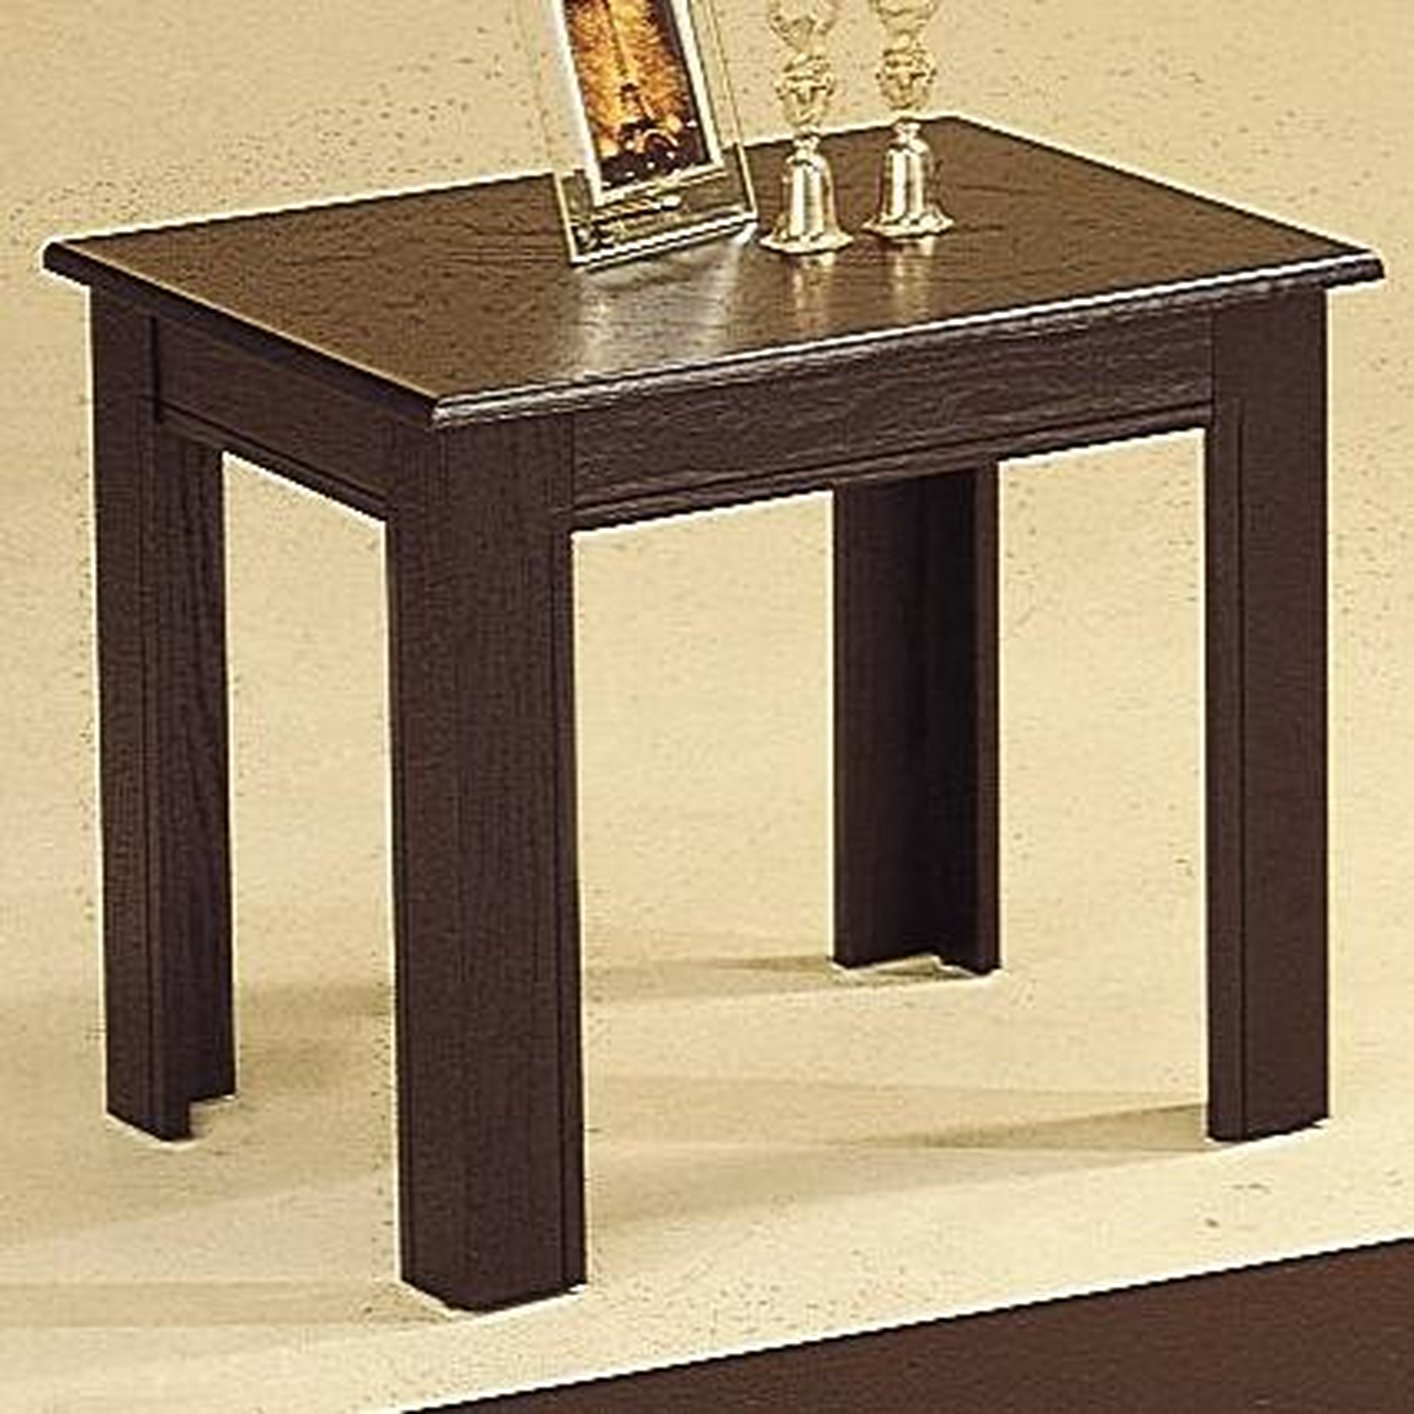 Acosta Black Wood Coffee Table Set Steal A Sofa Furniture Outlet